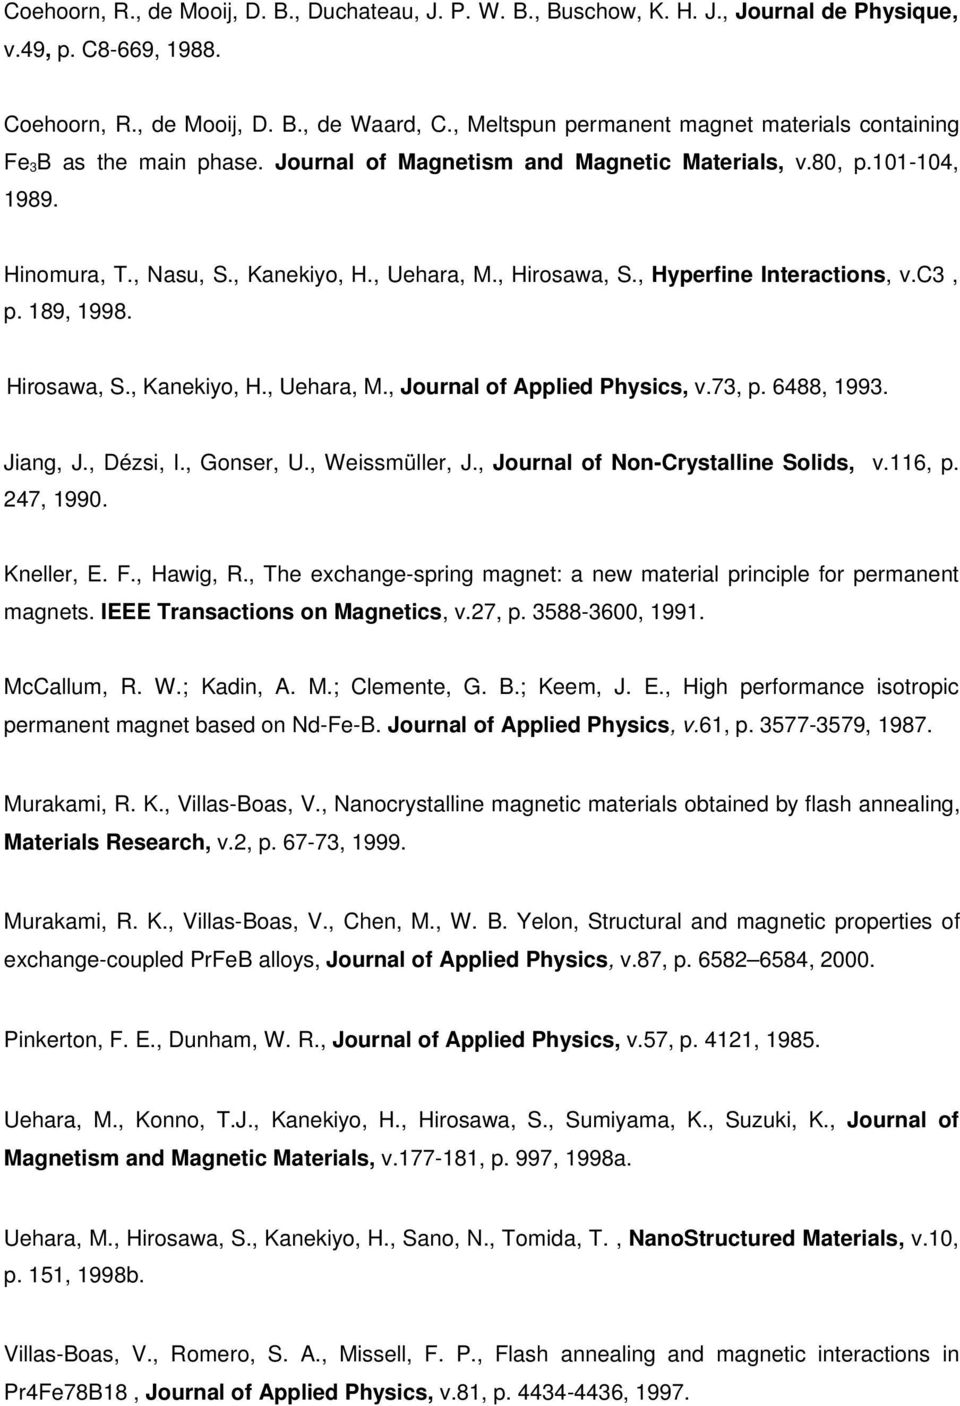 , Hirosawa, S., Hyperfine Interactions, v.c3, p. 189, 1998. Hirosawa, S., Kanekiyo, H., Uehara, M., Journal of Applied Physics, v.73, p. 6488, 1993. Jiang, J., Dézsi, I., Gonser, U., Weissmüller, J.